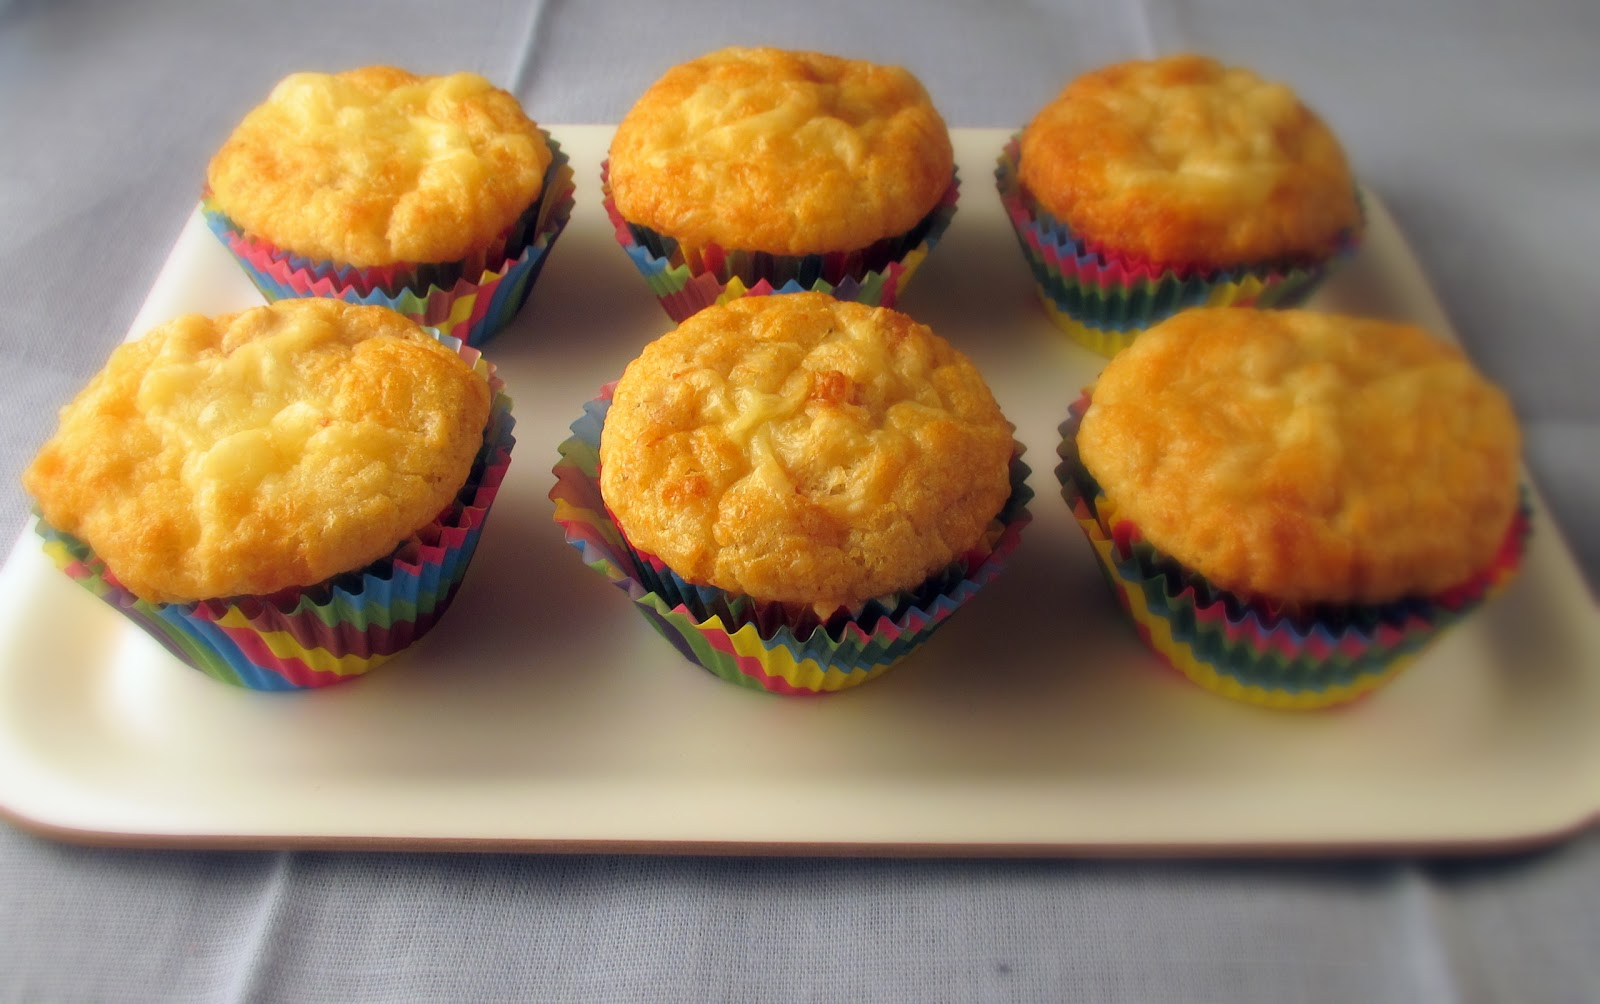 Me And My Sweets: Ham and Cheese Muffins